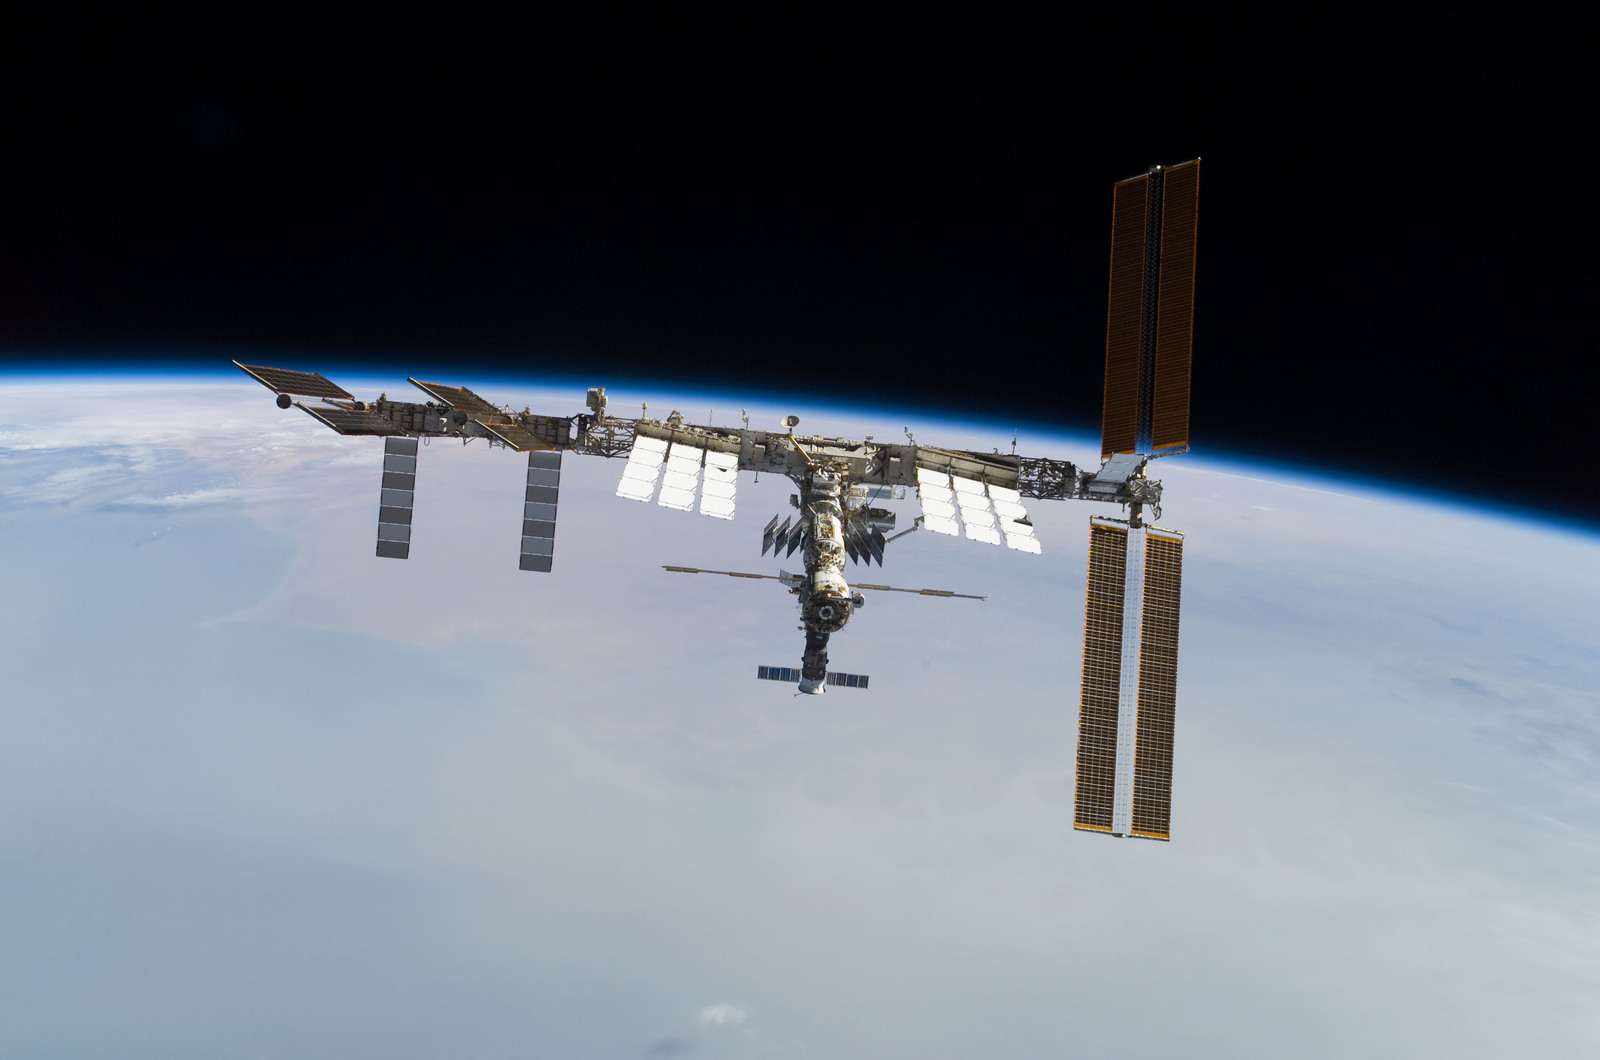 S122E010965 - STS-122 - View of ISS after STS-122 Undocking